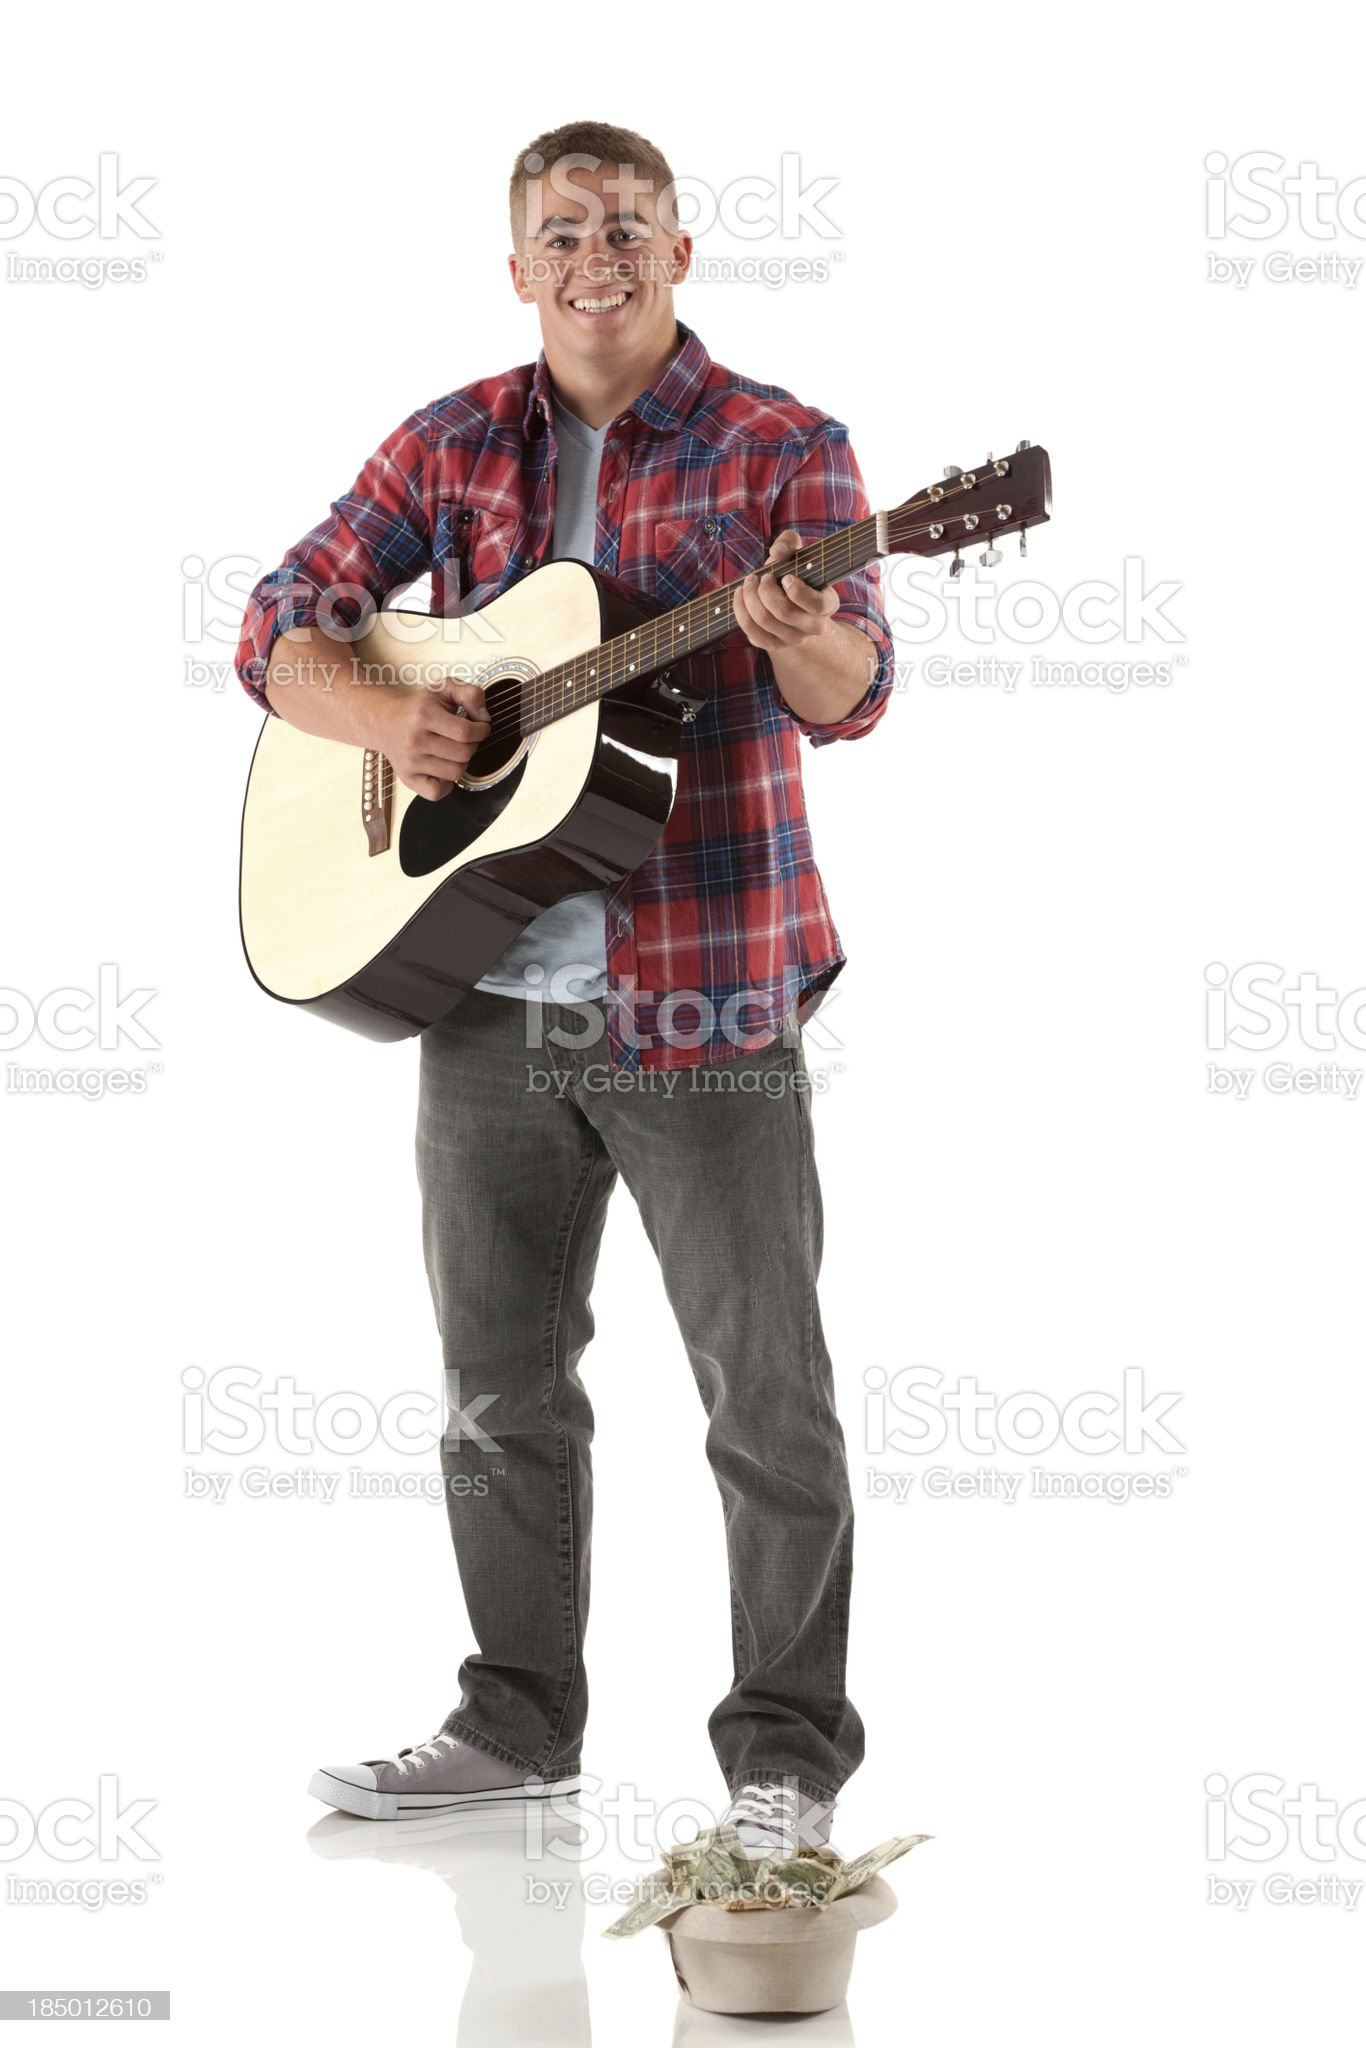 Portrait of man playing a guitar royalty-free stock photo